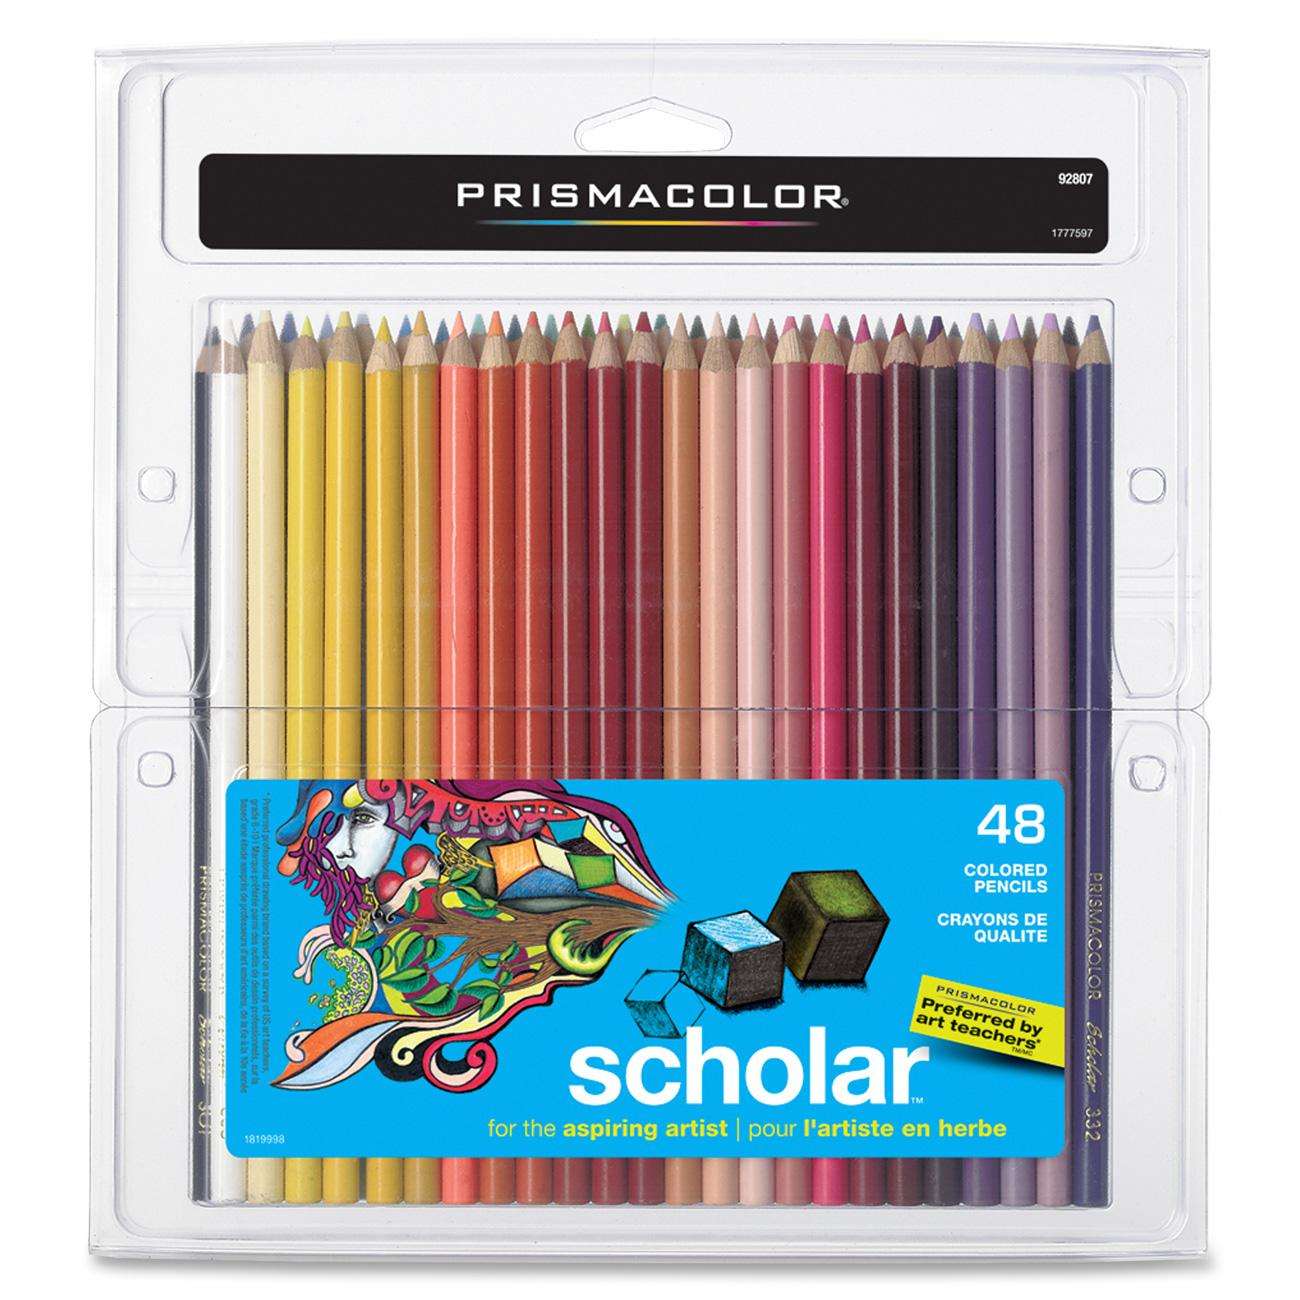 Prismacolor Scholar Colored Pencil Set, 48 Colors